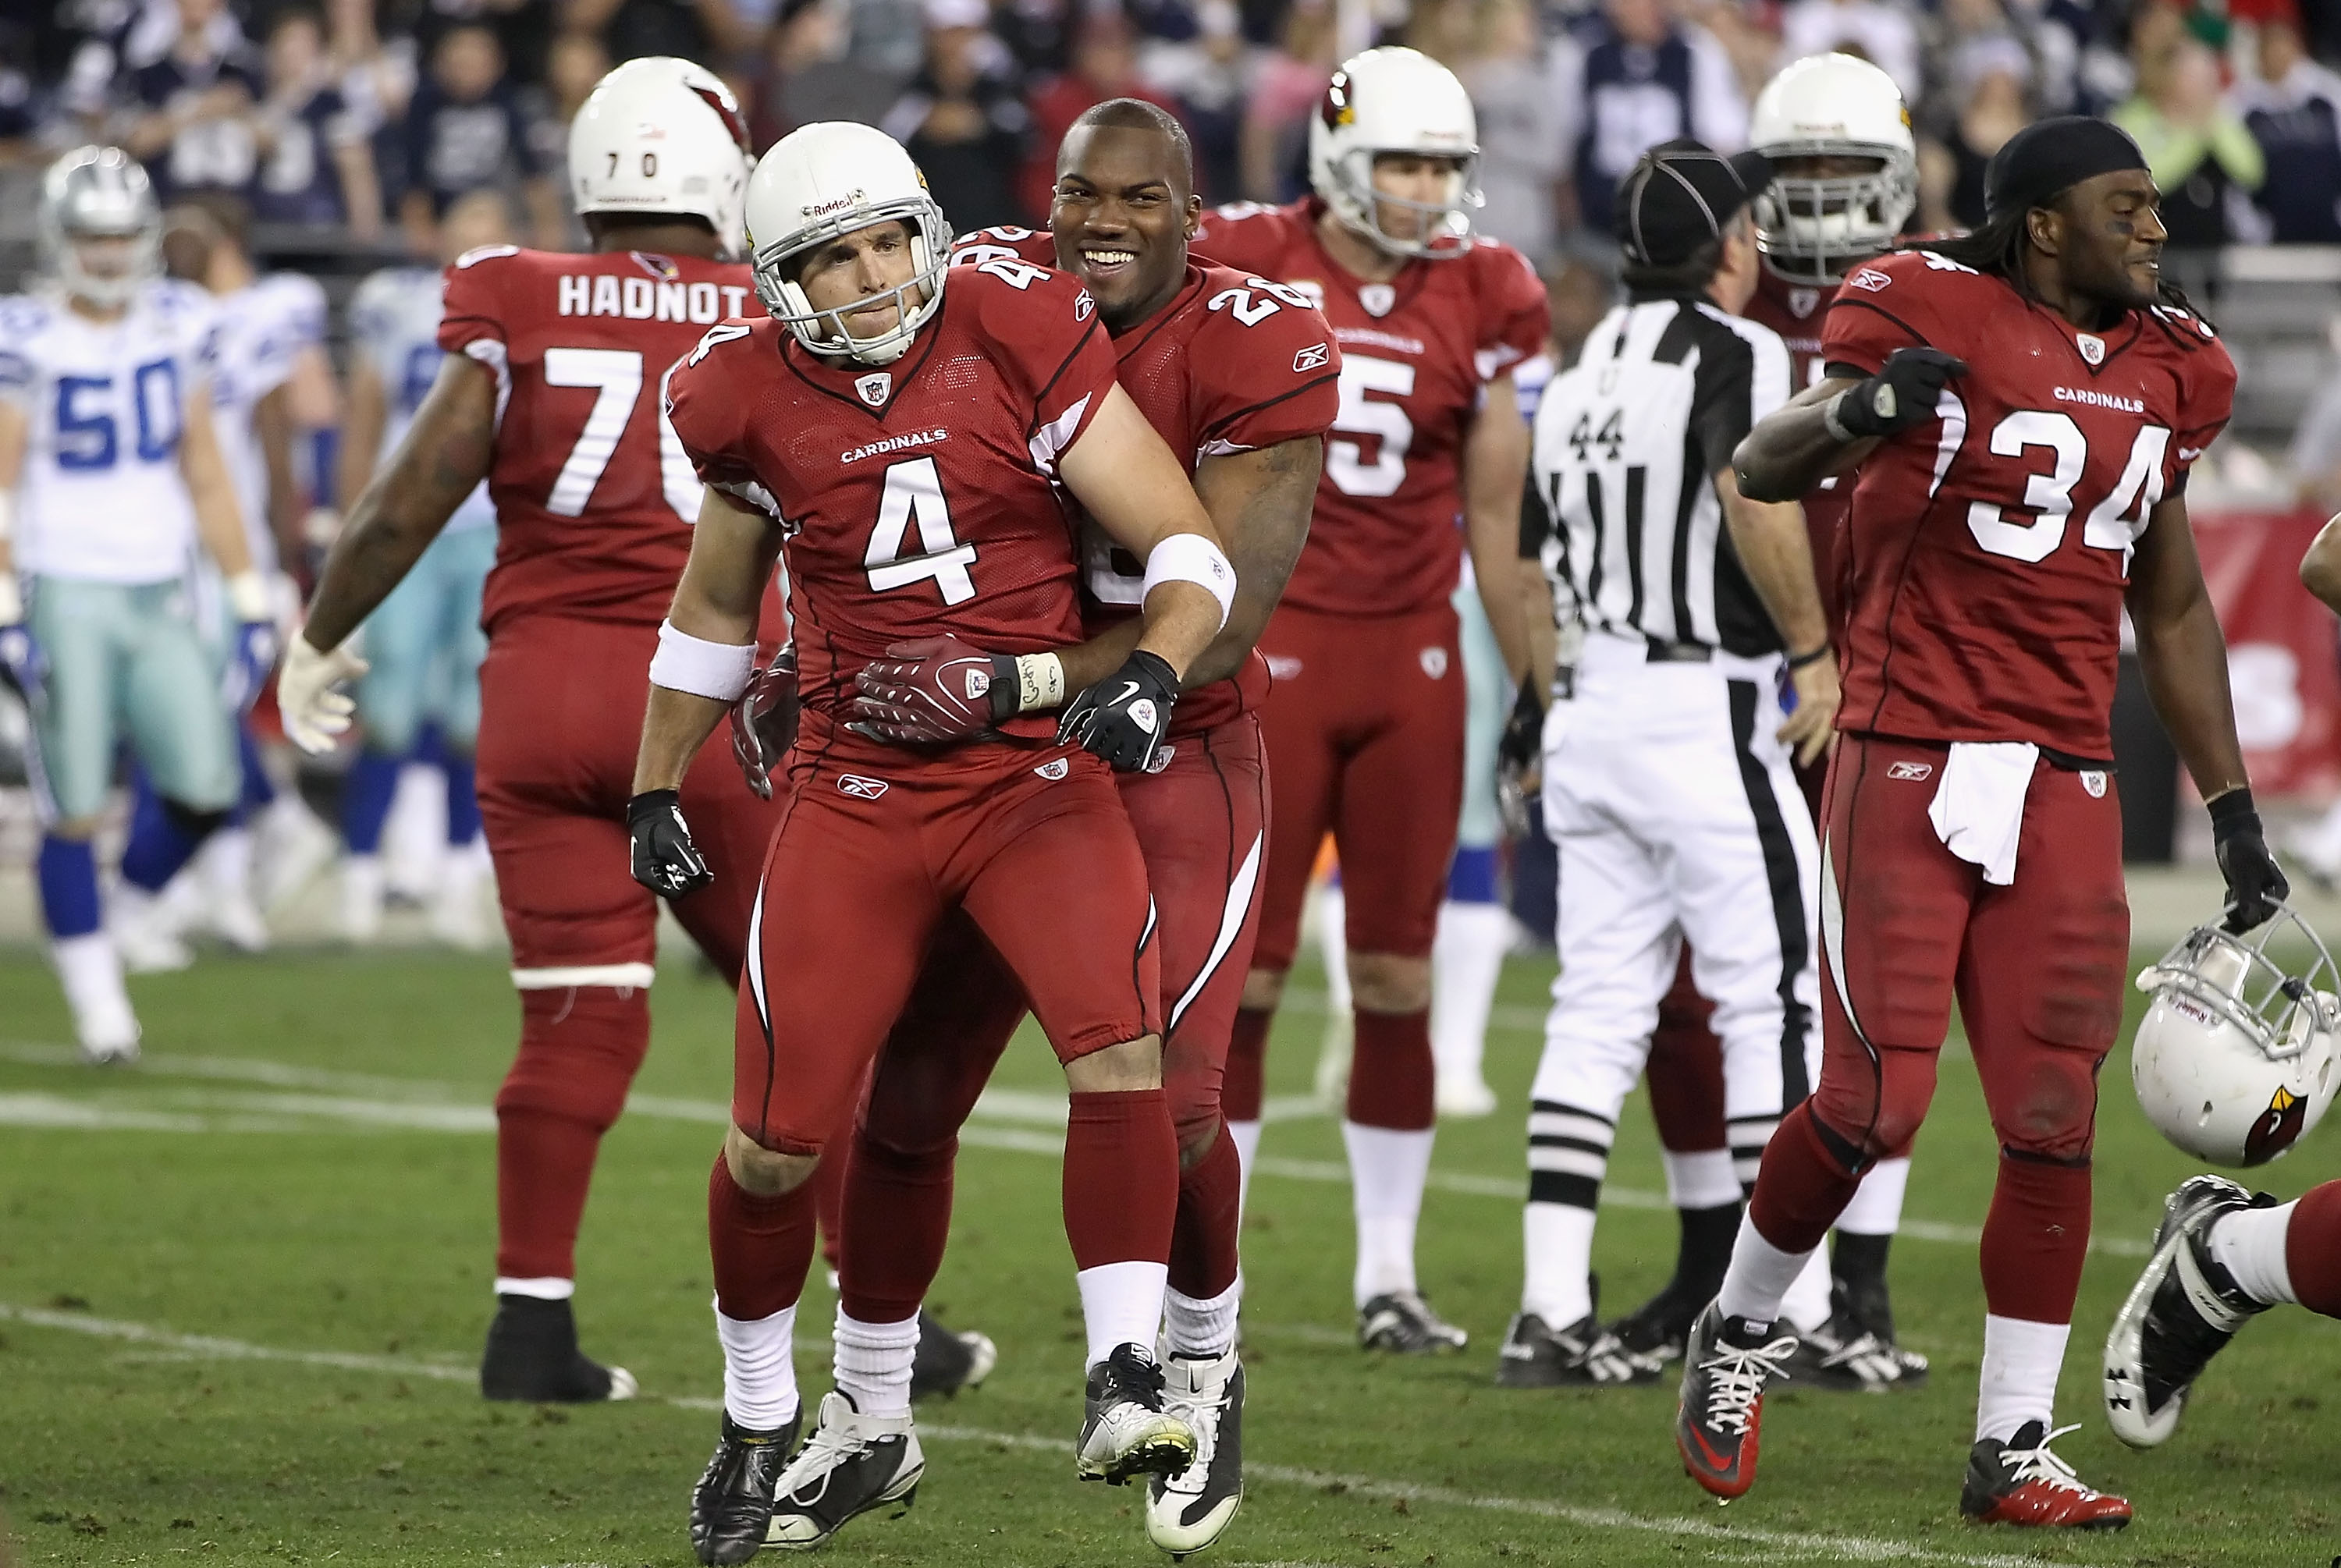 GLENDALE, AZ - DECEMBER 25:  Kicker Jay Feely #4 of the Arizona Cardinals celebrates with Beanie Wells #26 after making a 48 yard field goal in the final moments of the NFL game against the Dallas Cowboys at the University of Phoenix Stadium on December 2